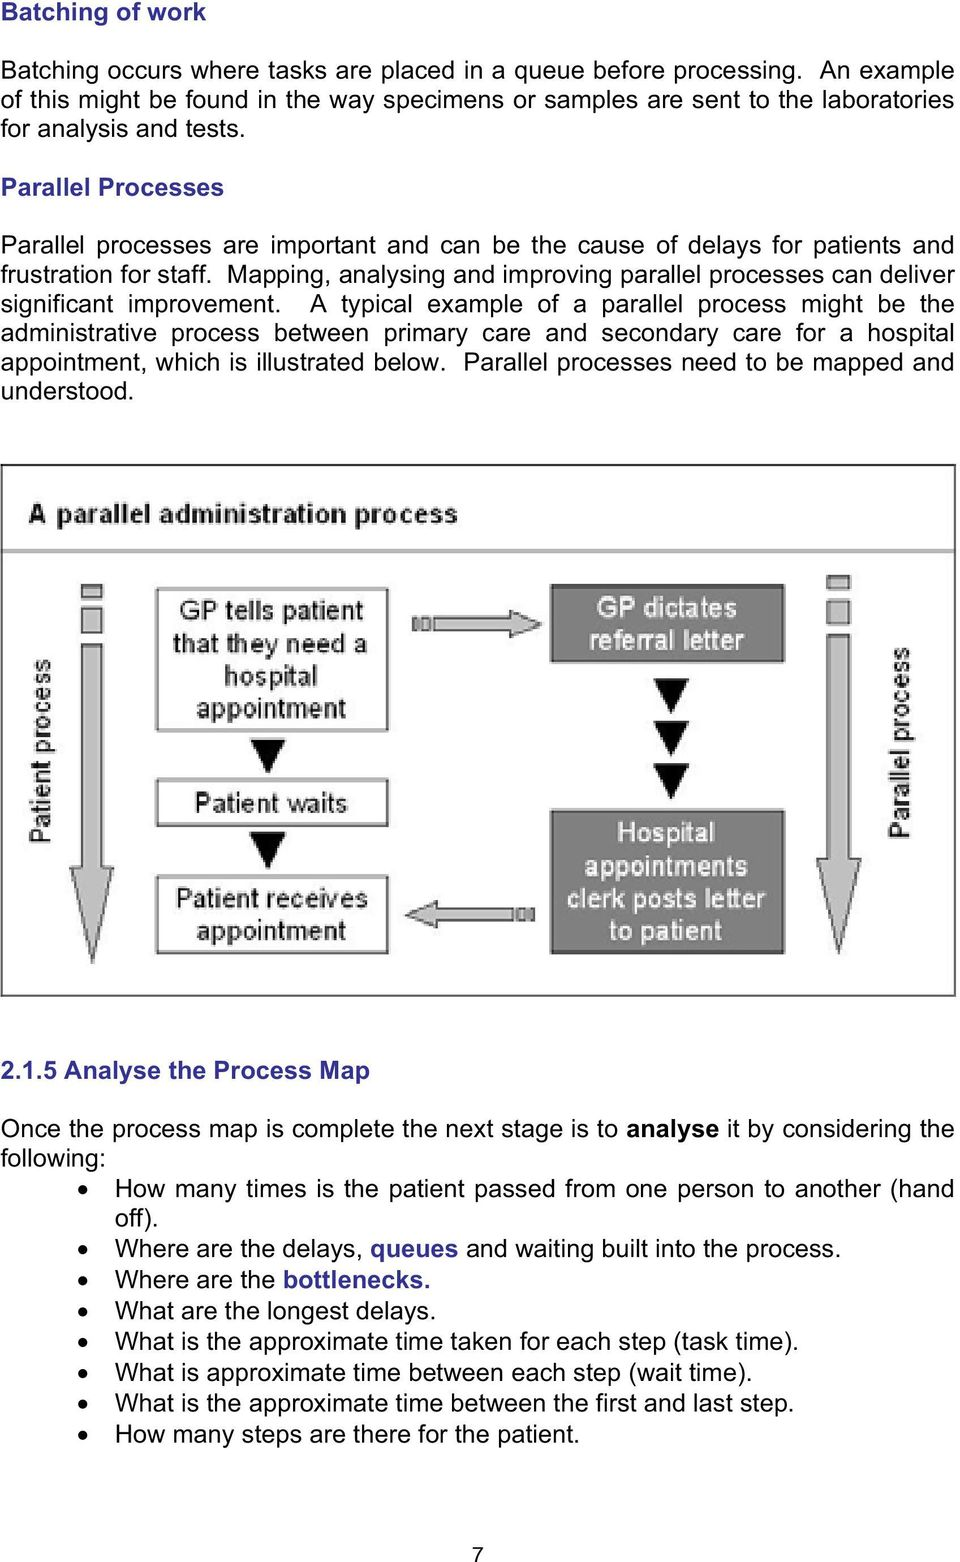 Parallel Processes Parallel processes are important and can be the cause of delays for patients and frustration for staff.